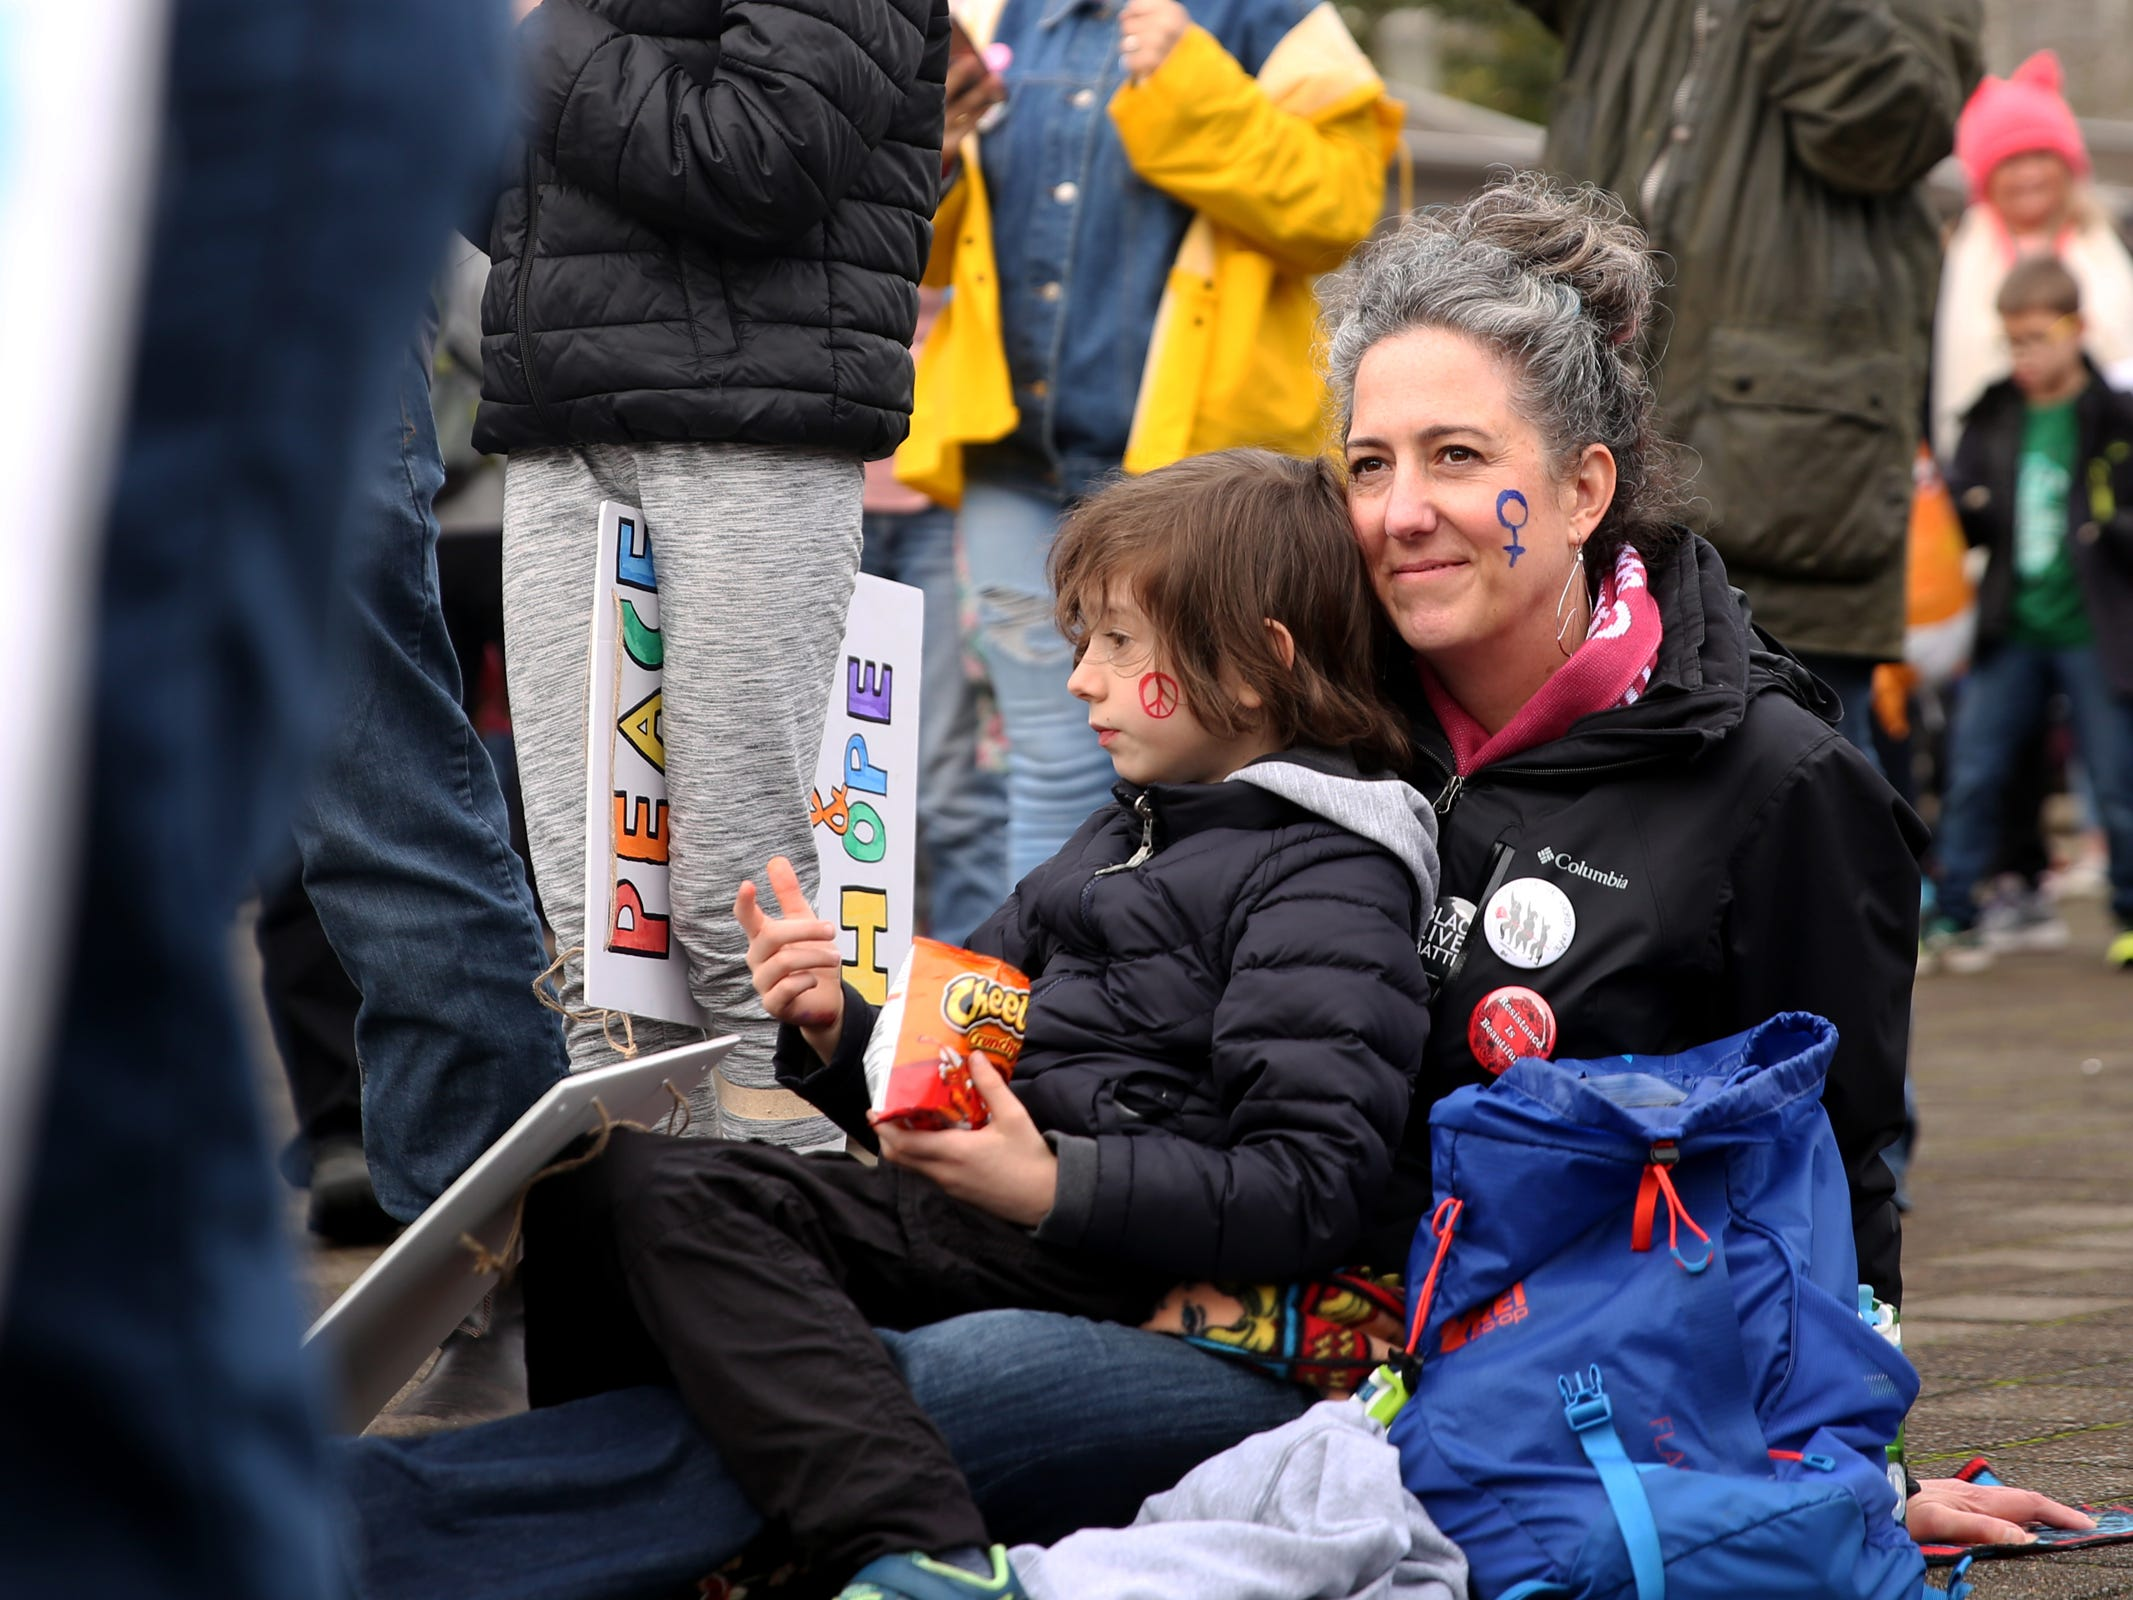 Chris Babinec, of Portland, sits with her son, Canyon Babinec-Love, 6, during the Women's March Salem outside the Oregon State Capitol on Saturday, Jan. 19, 2019.